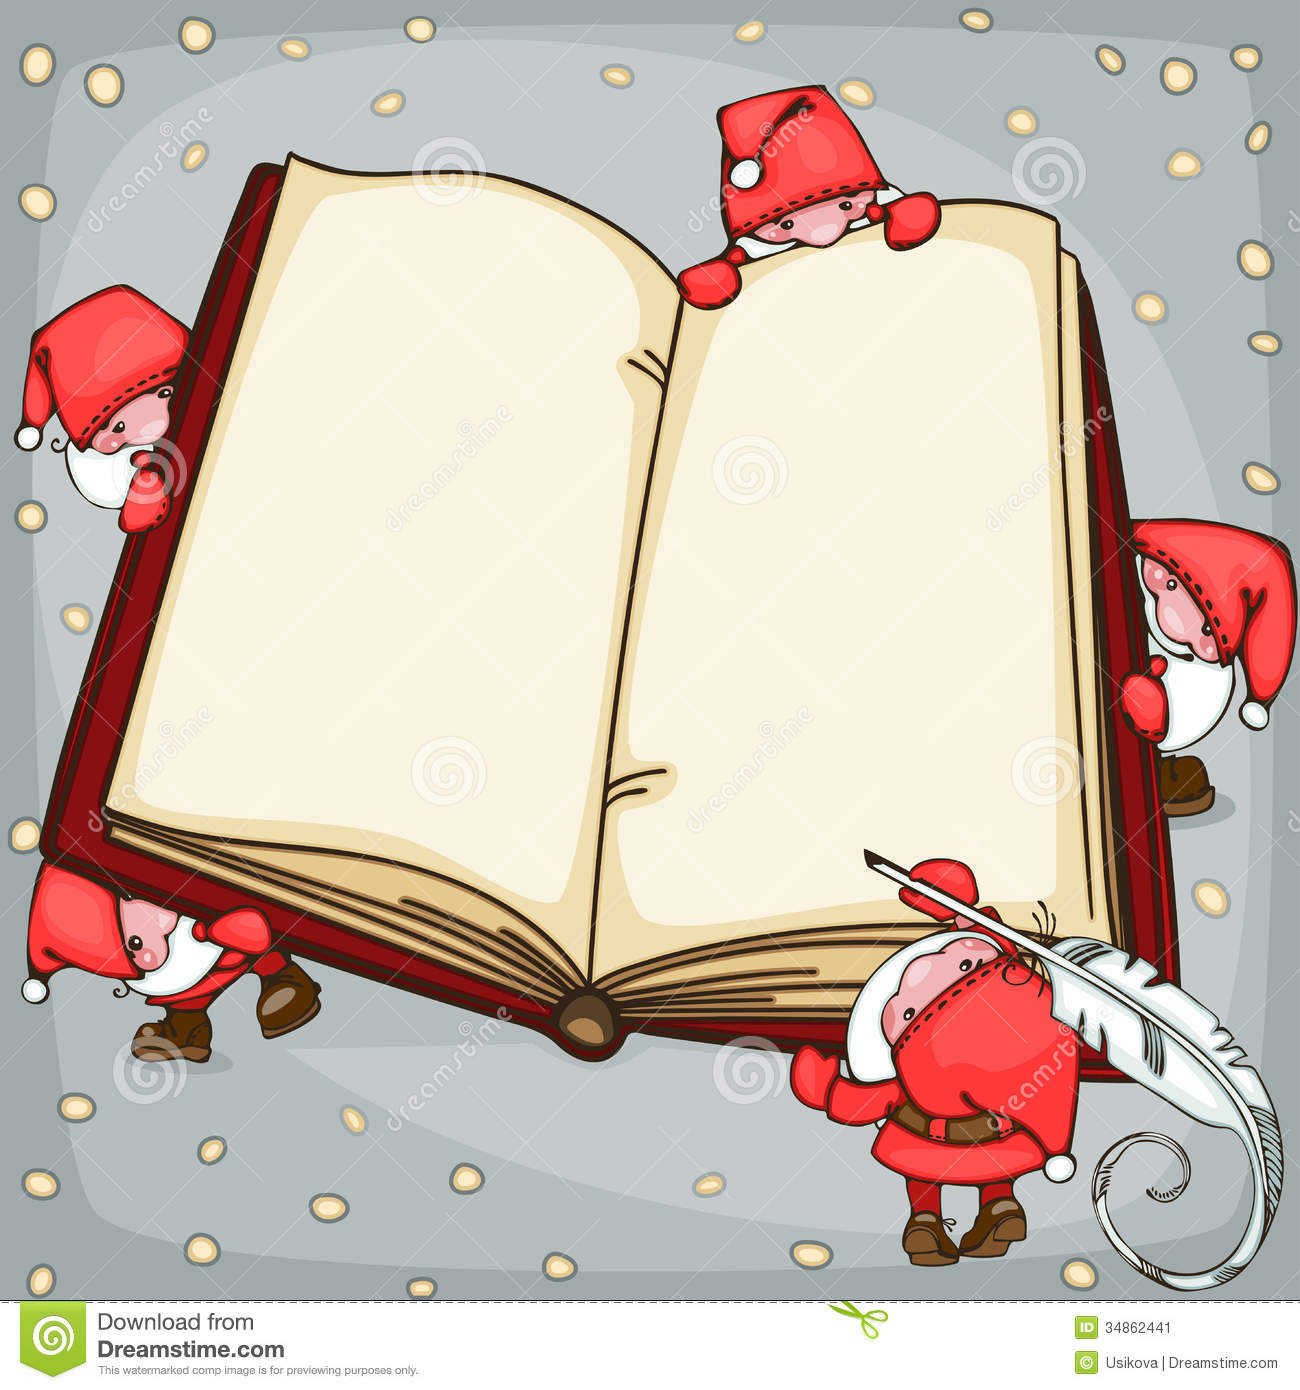 Christmas Book Stock Vector. Image Of Cartoon, Poster